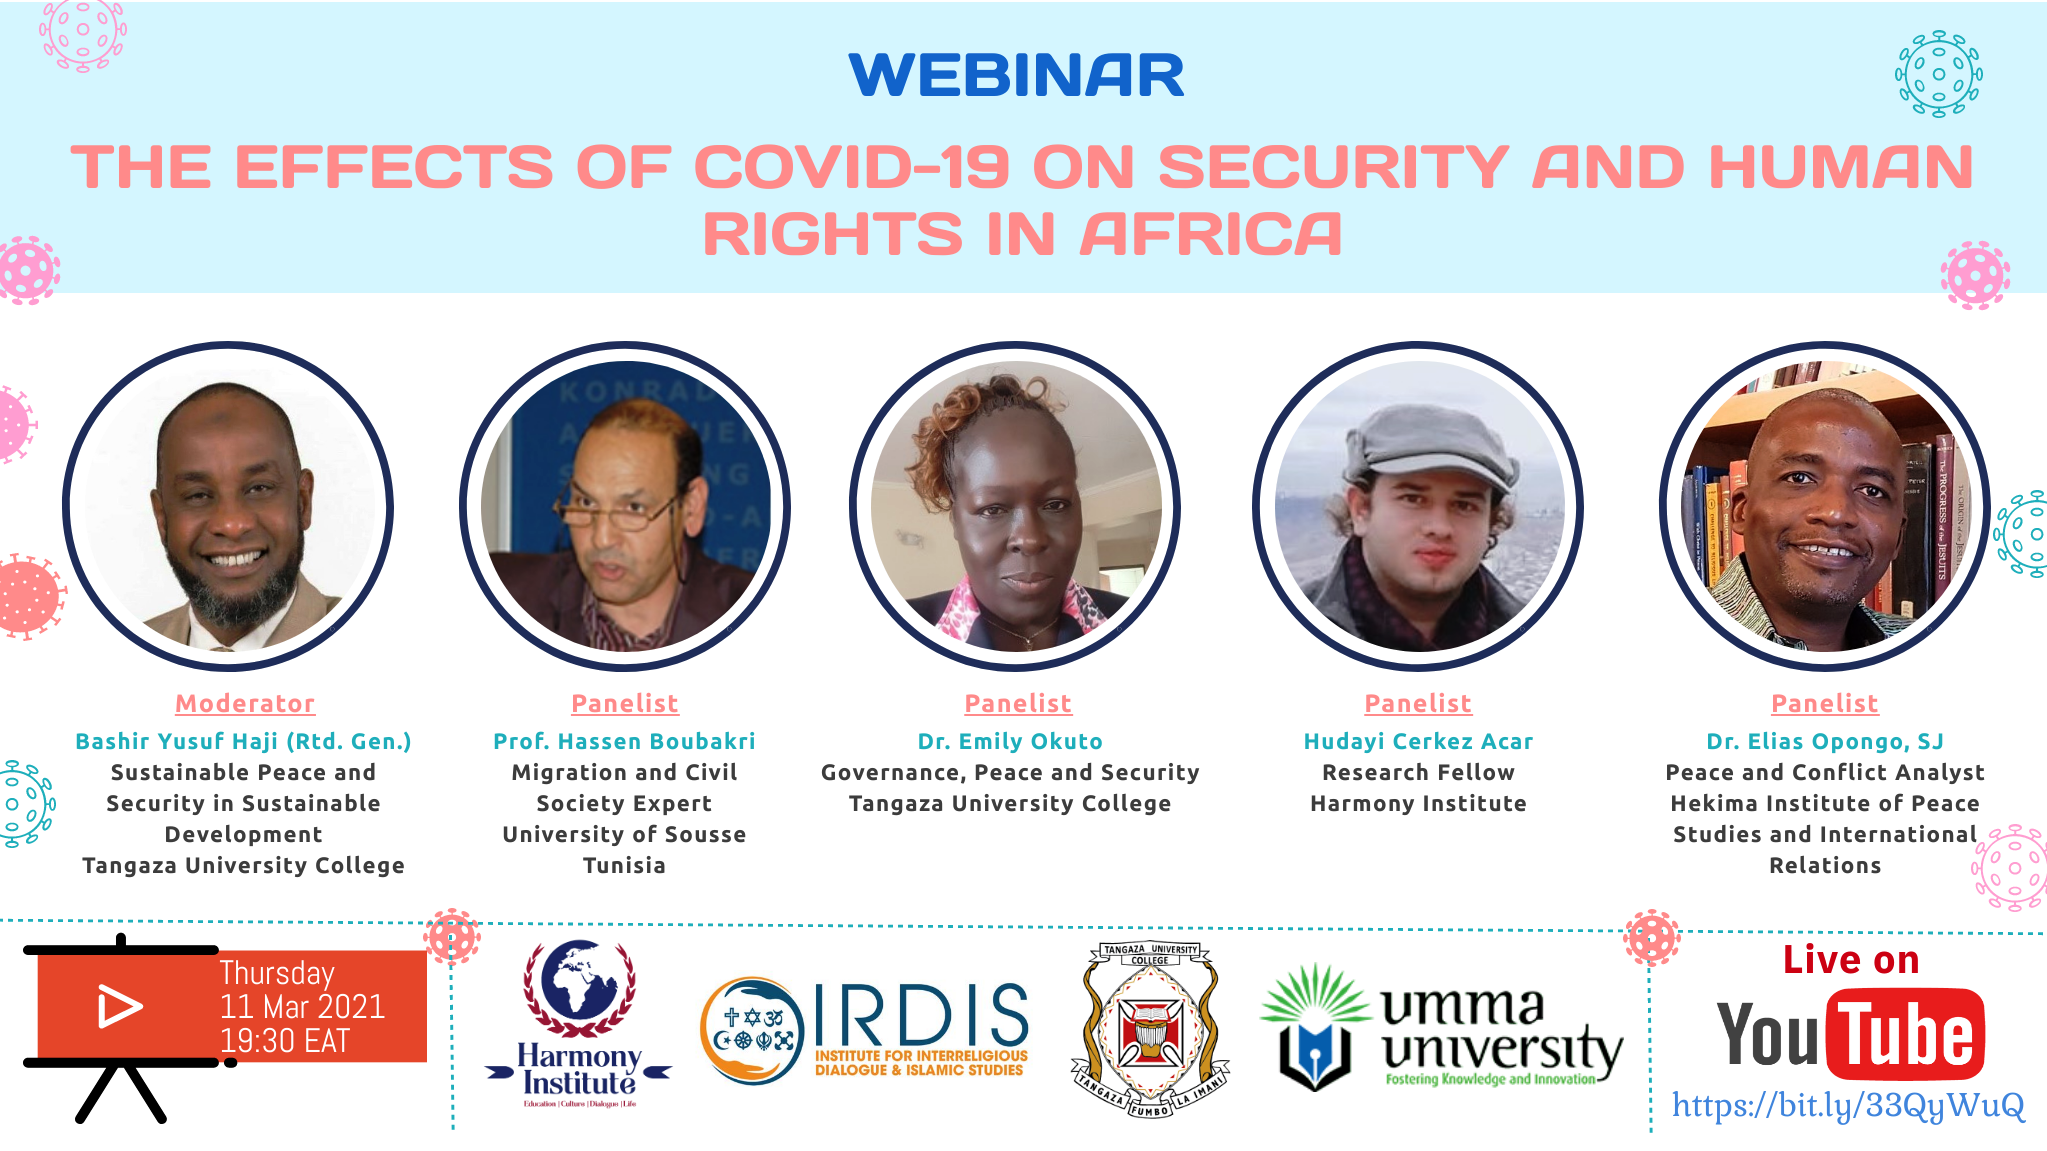 THE EFFECTS OF COVID-19 ON SECURITY AND HUMAN RIGHTS IN AFRICA